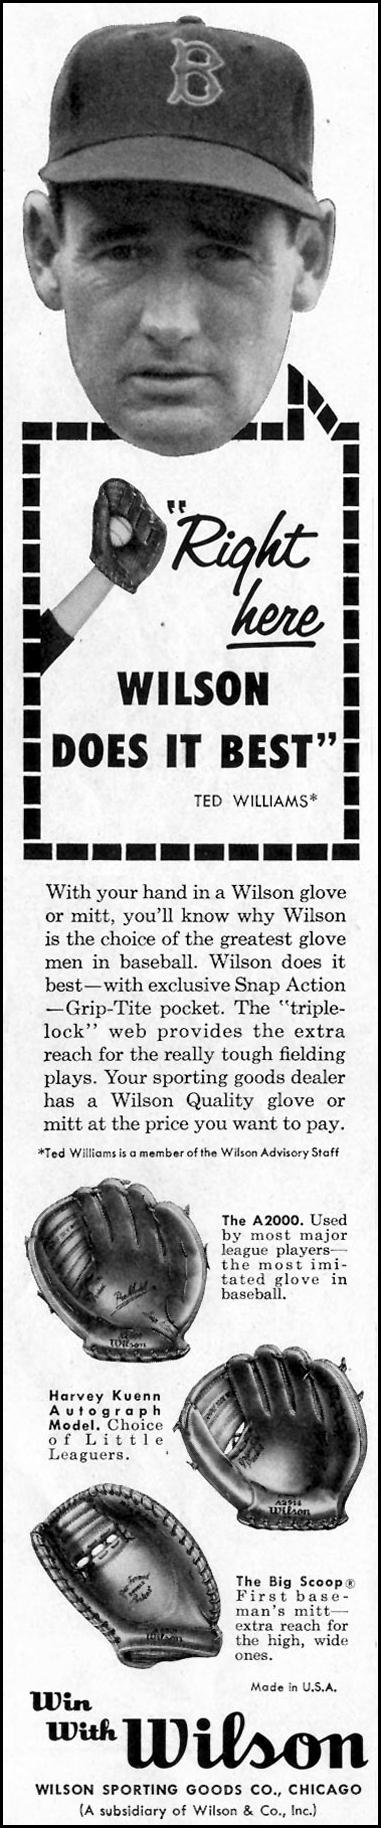 WILSON BASEBALL GLOVES SATURDAY EVENING POST 05/02/1959 p. 120